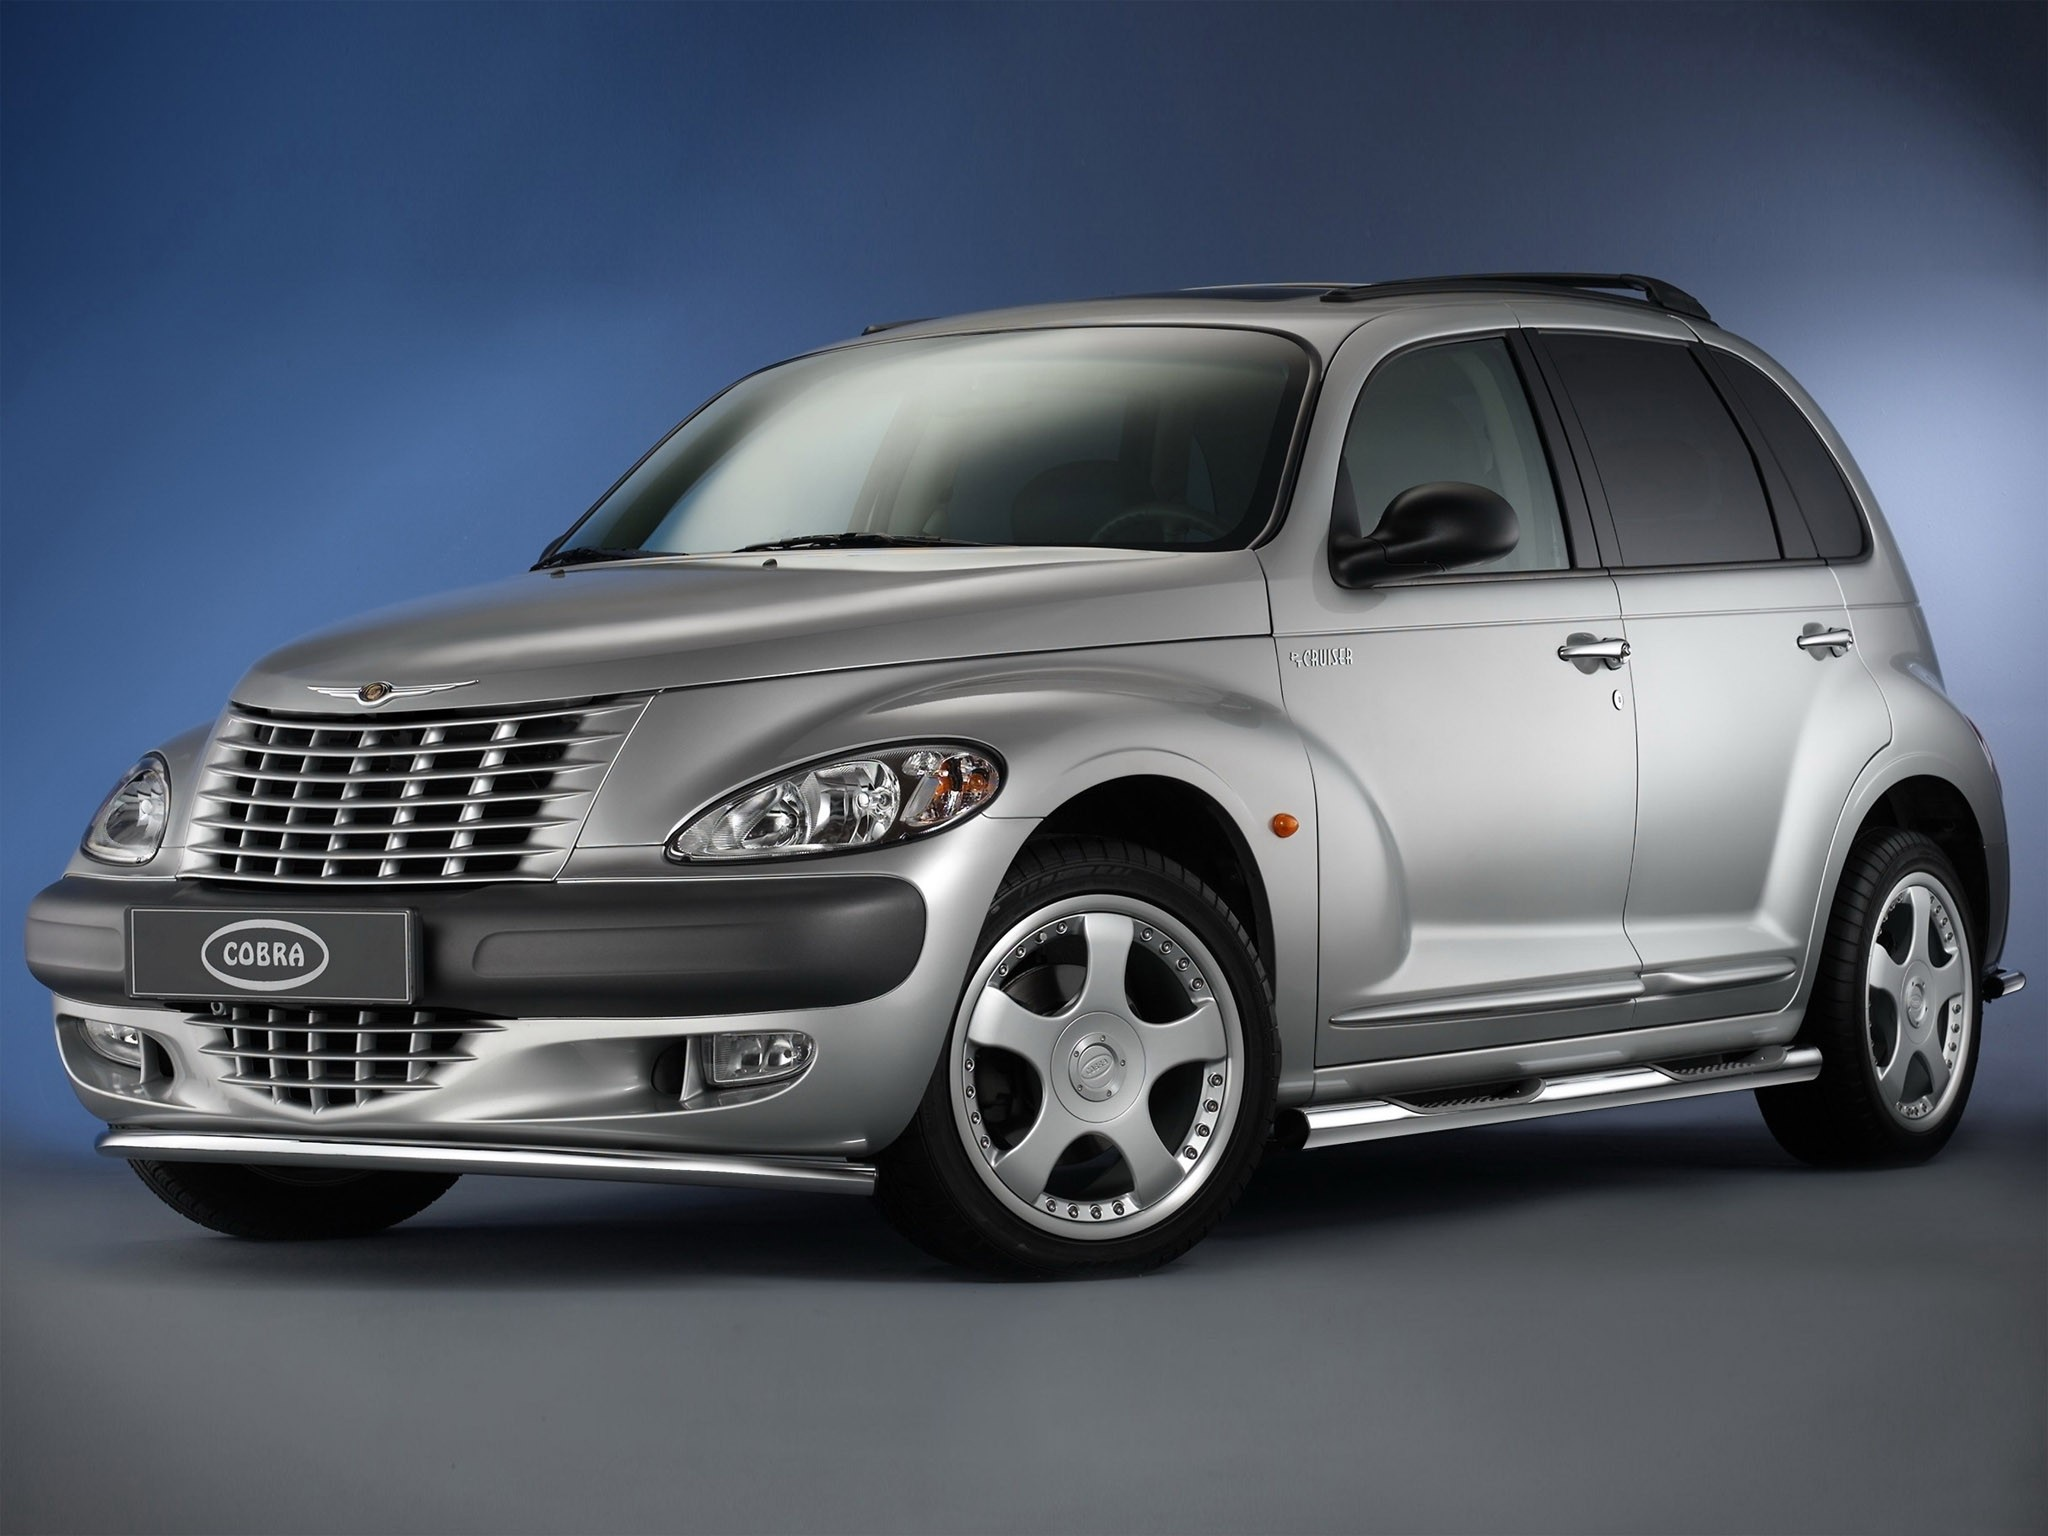 2006 Cobra Chrysler PT Cruiser